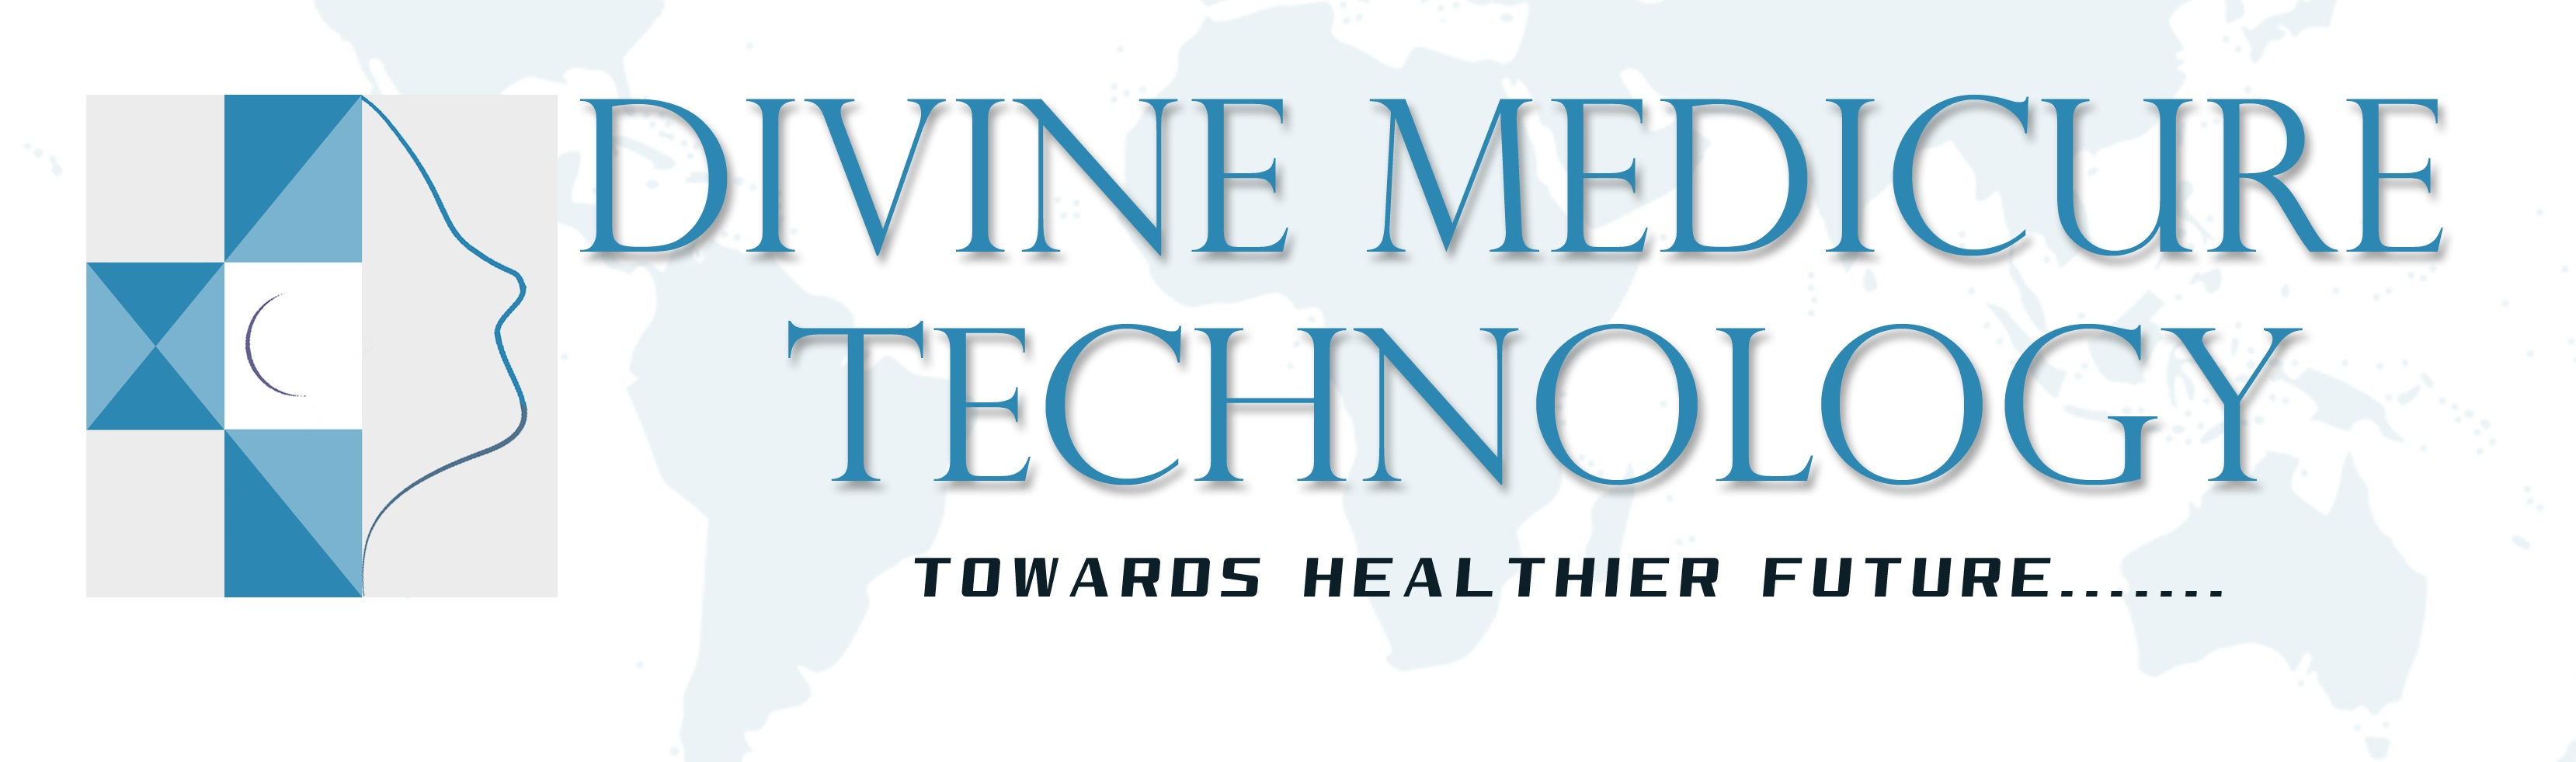 DIVINE MEDICURE TECHNOLOGY